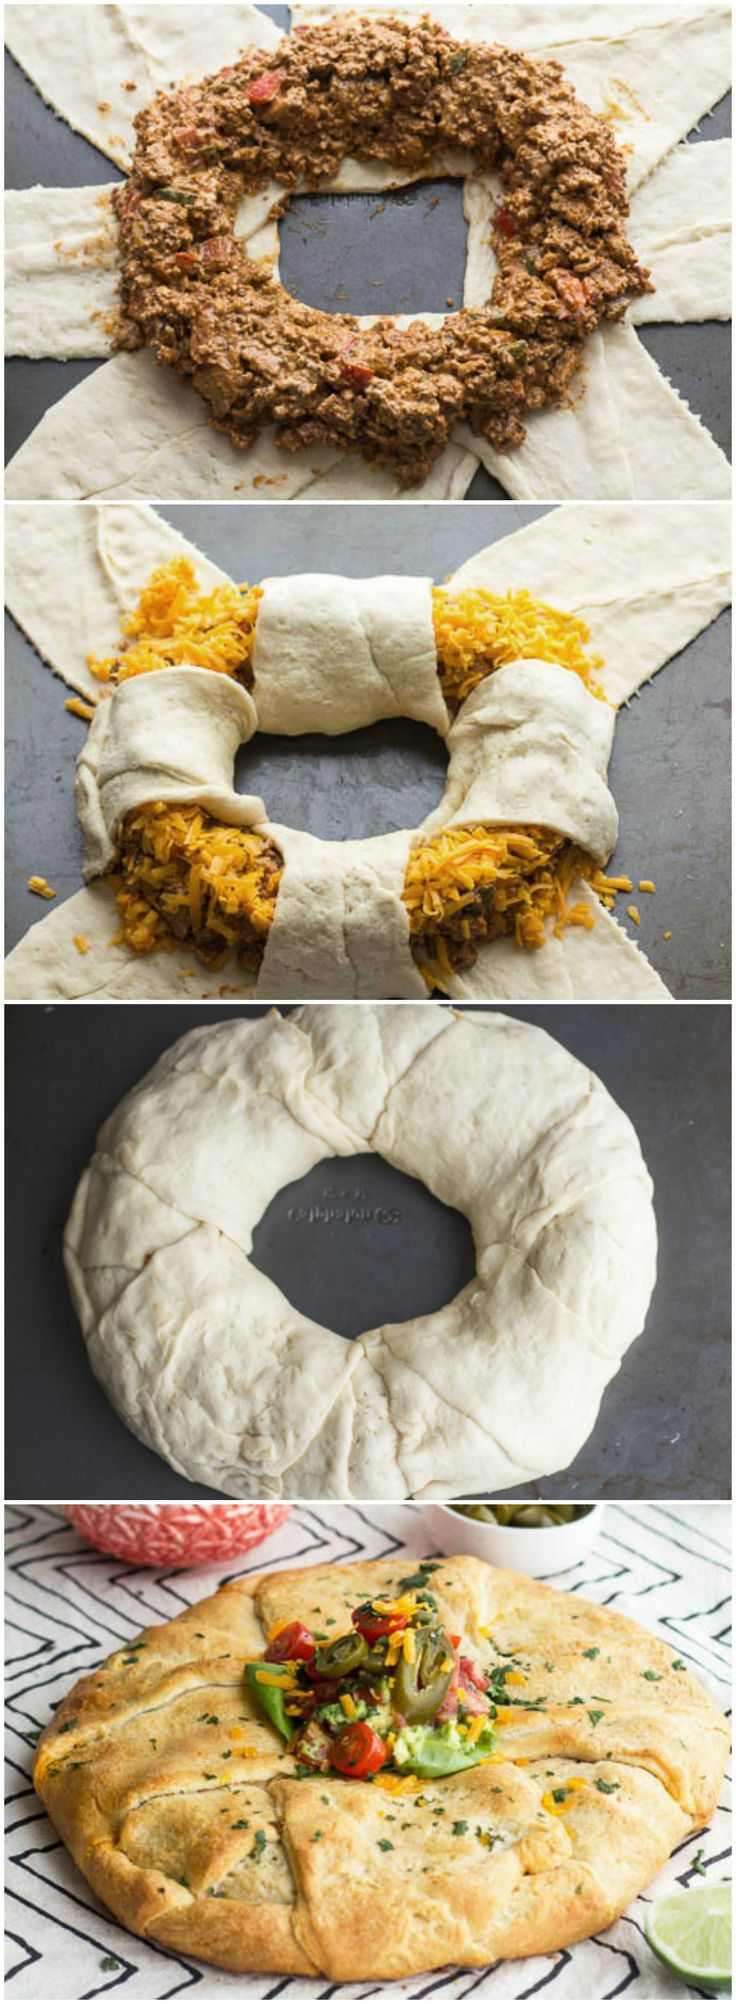 Chipotle Chicken Taco Ring Recipe ~ Chipotle chicken taco mixture is wrapped inside a golden baked crescent shell. http://www.tablespoon.com/recipes/chipotle-chicken-taco-ring/85bfdb11-b4ba-4c83-b4cd-6b3839b3de42